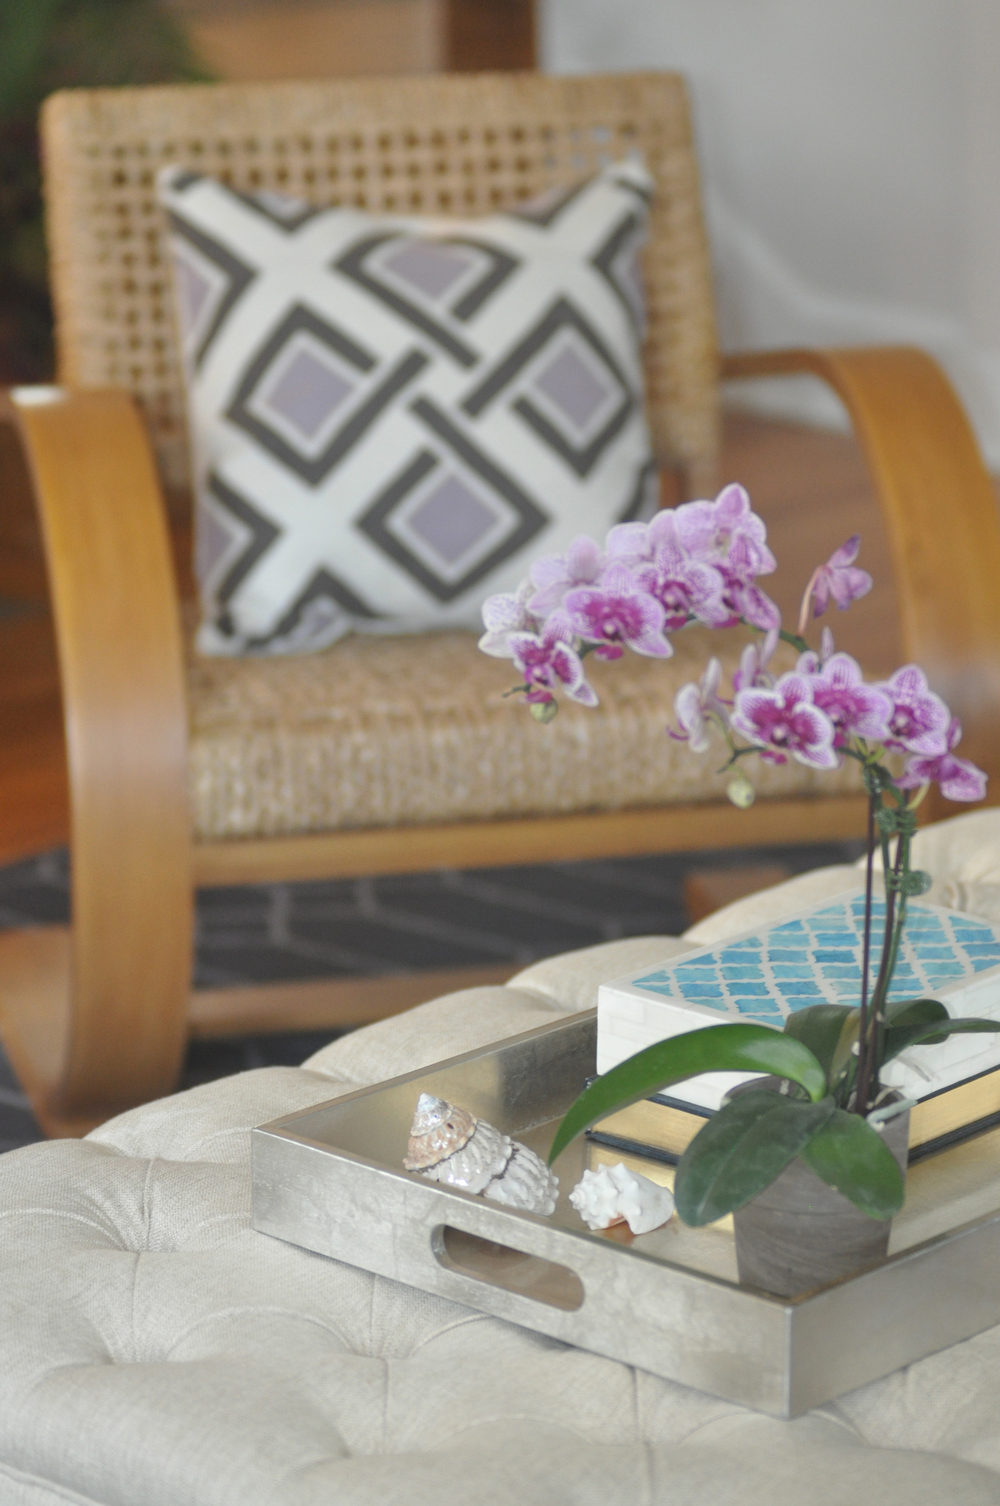 Living Room_Accessories_Ratan Chair_Madeline Weinrib Pillow_Orchid_KAM DESIGN.jpg